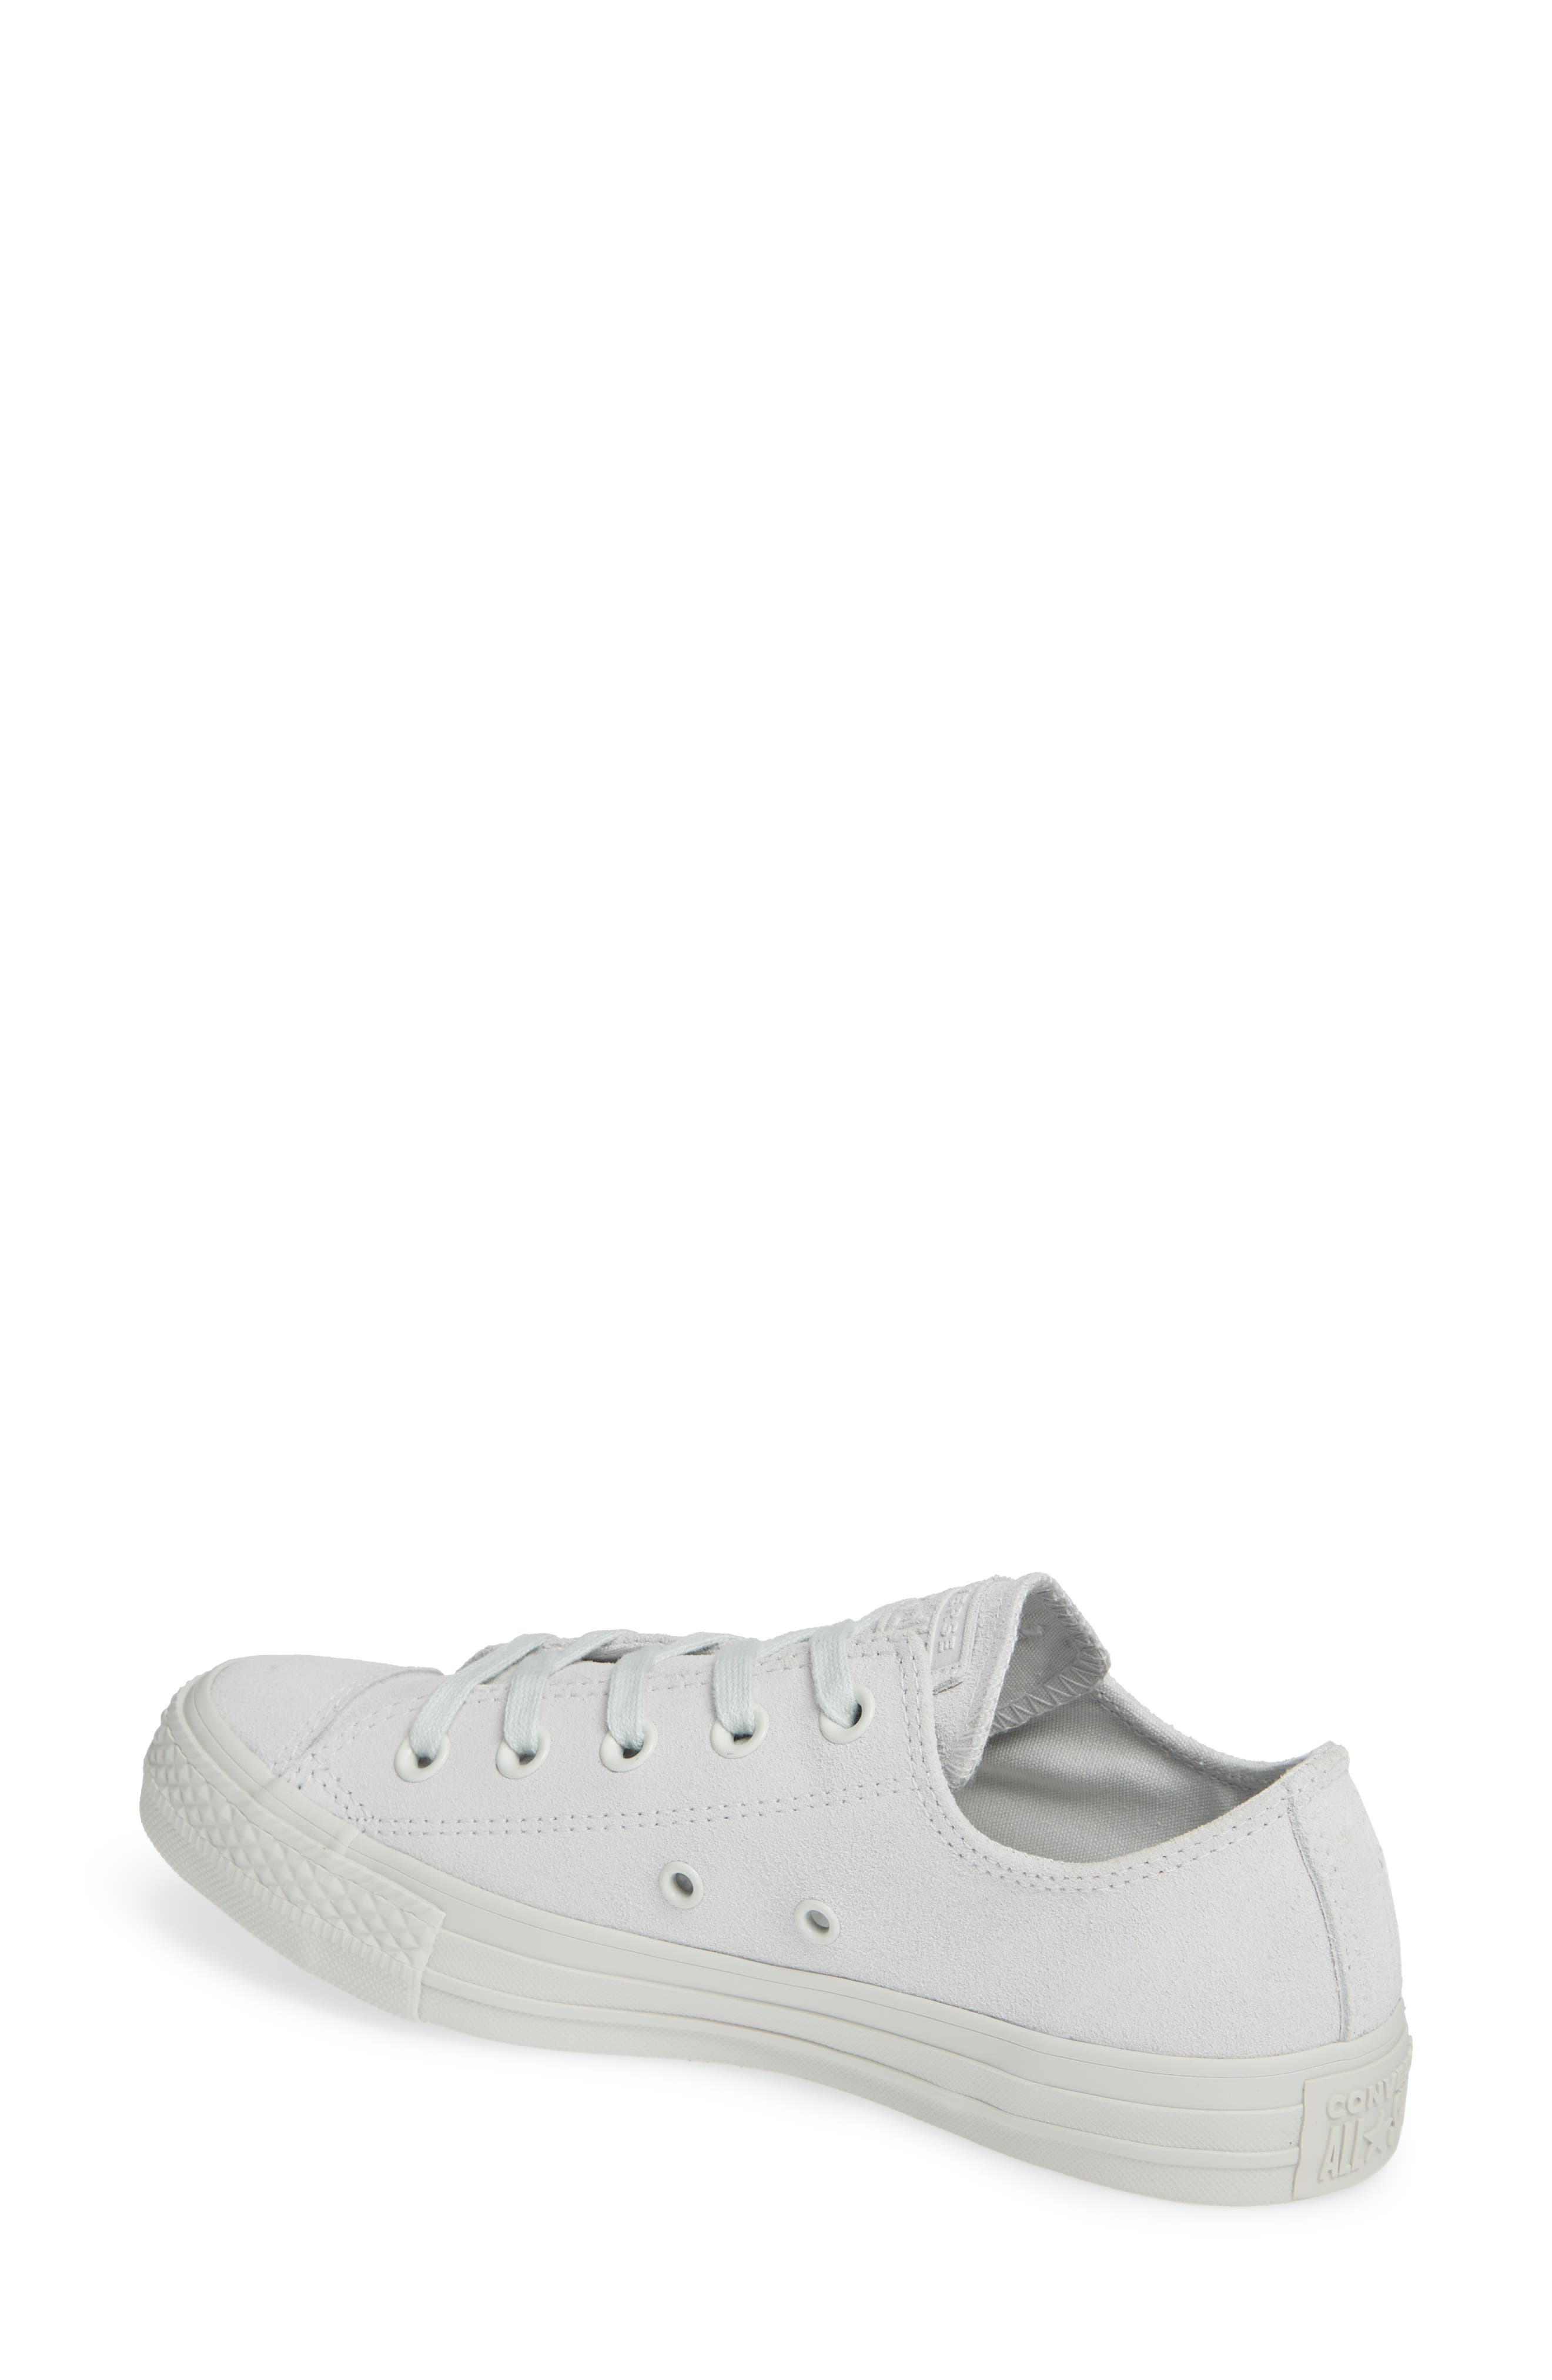 Chuck Taylor<sup>®</sup> All Star<sup>®</sup> Ox Sneaker,                             Alternate thumbnail 2, color,                             LIGHT SILVER SUEDE